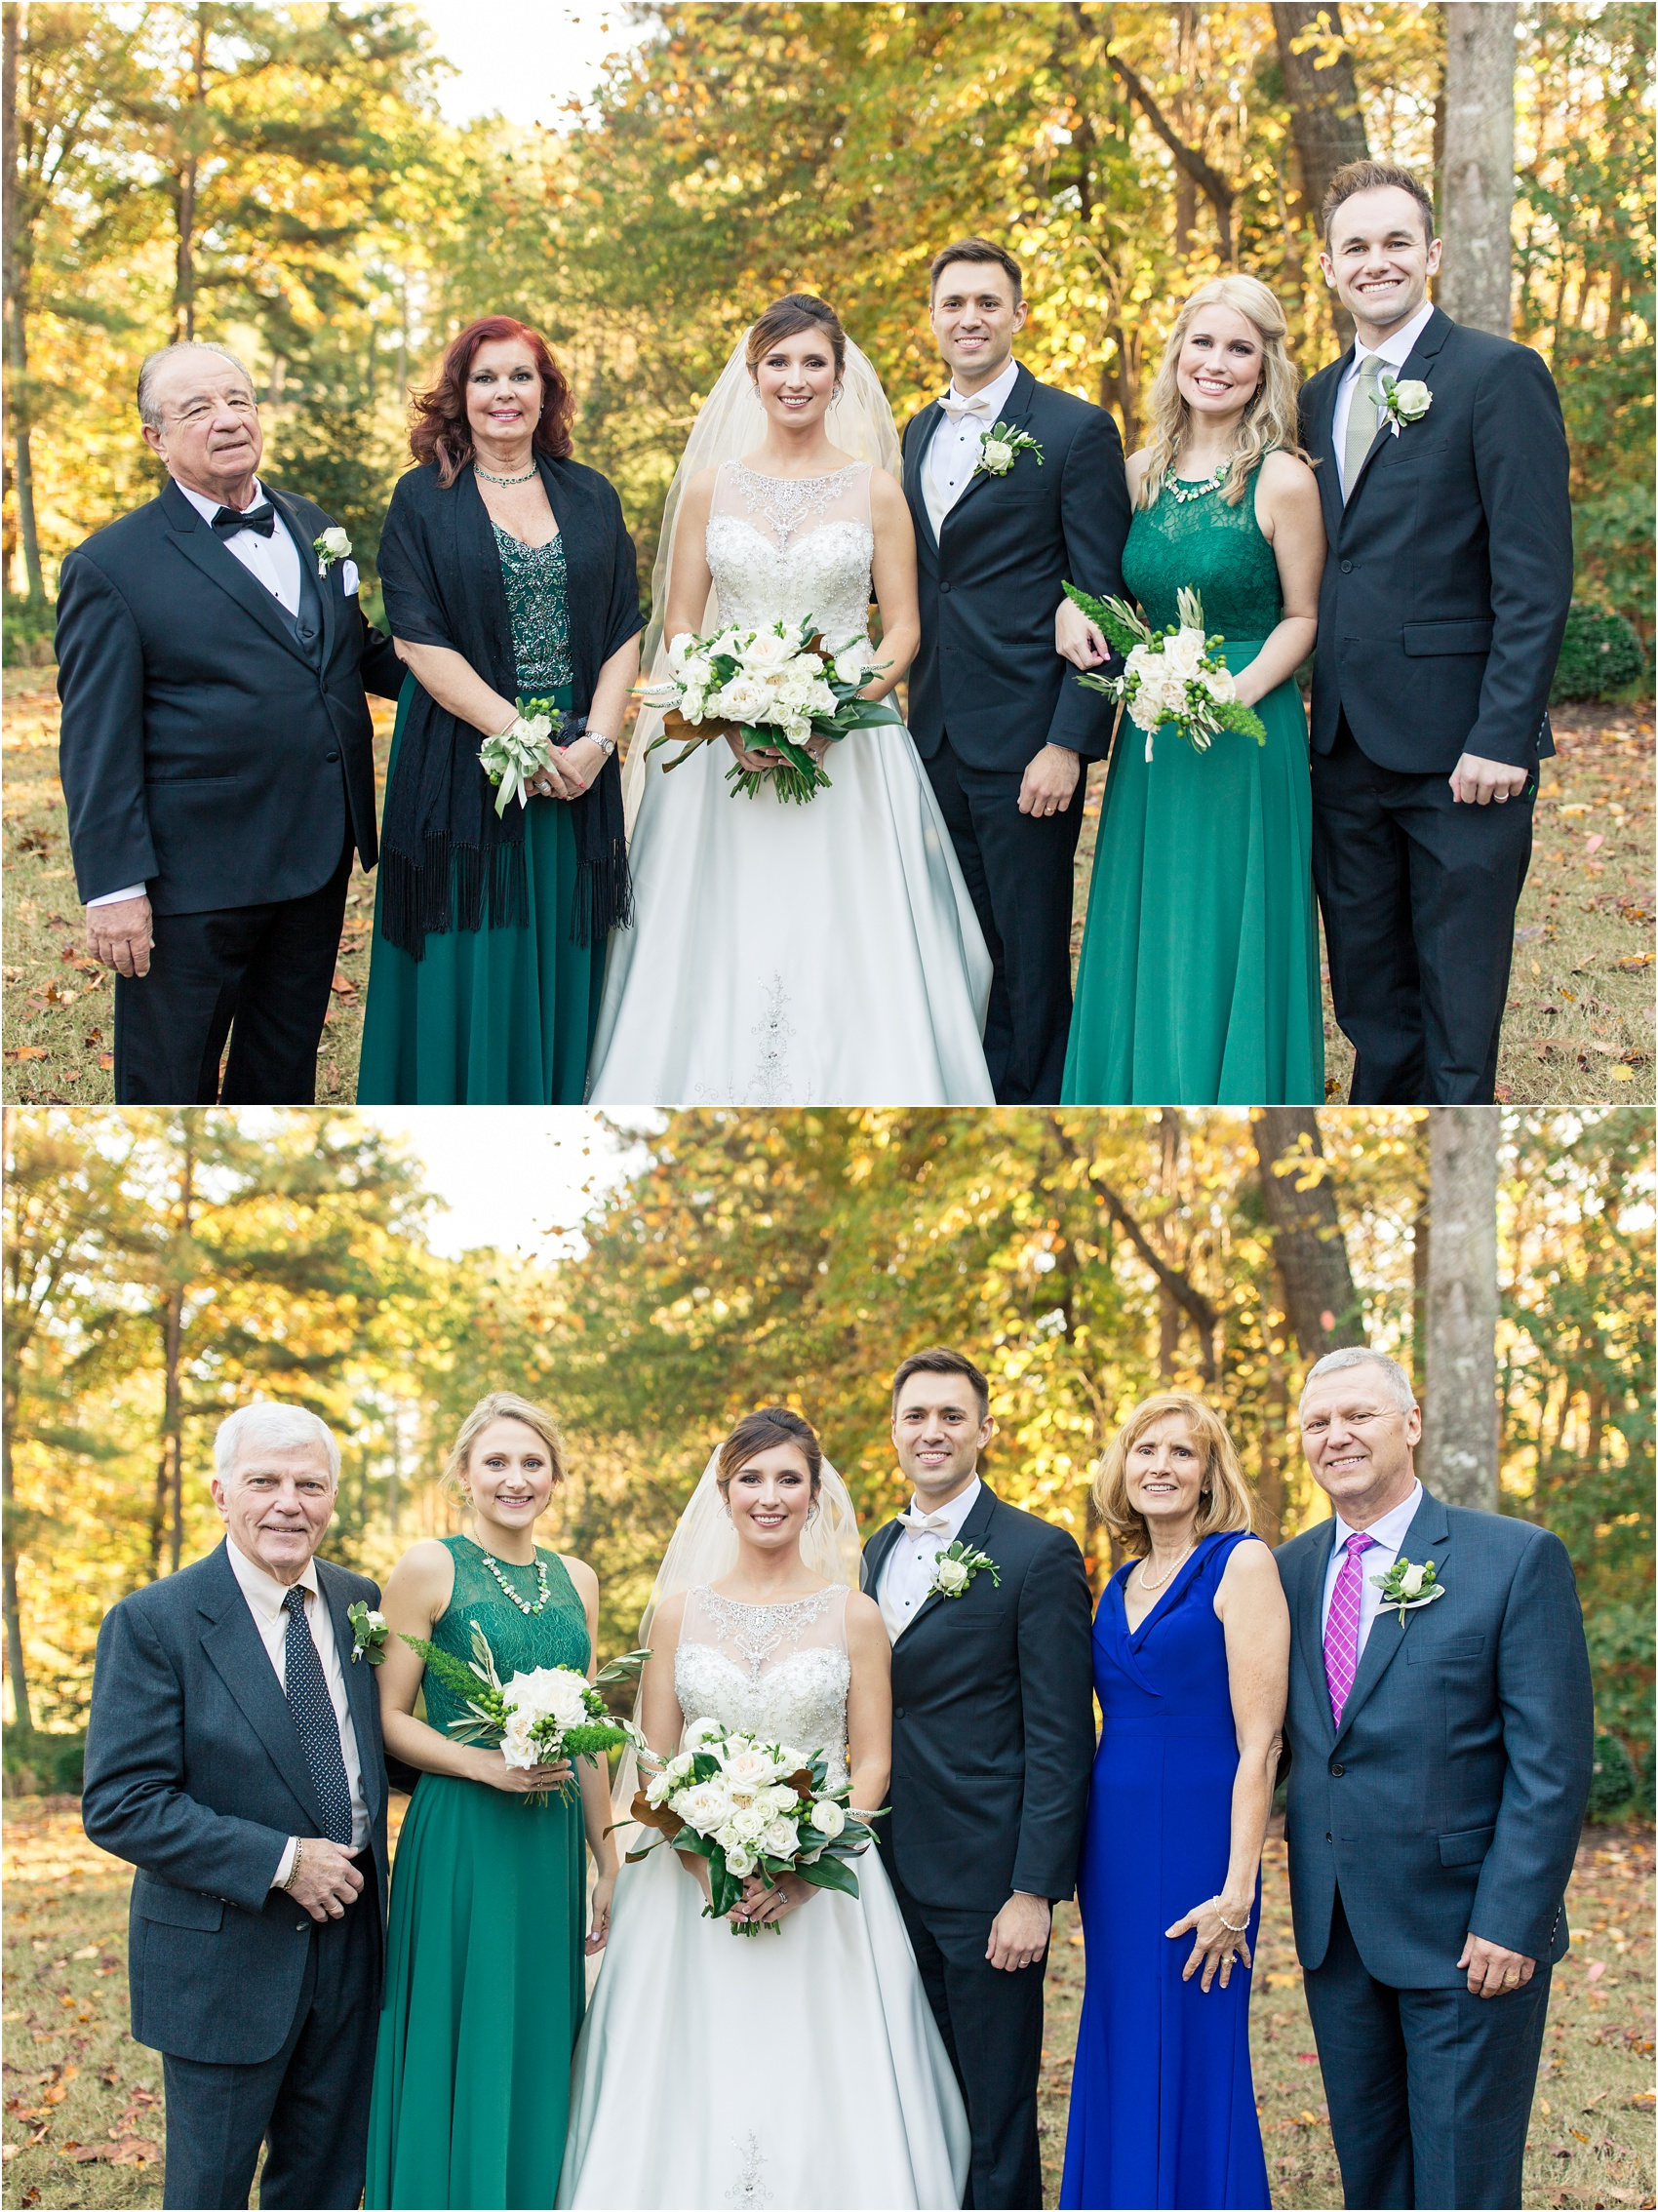 Savannah Eve Photography- Bottiglion-Scope Wedding- Sneak Peek-33.jpg